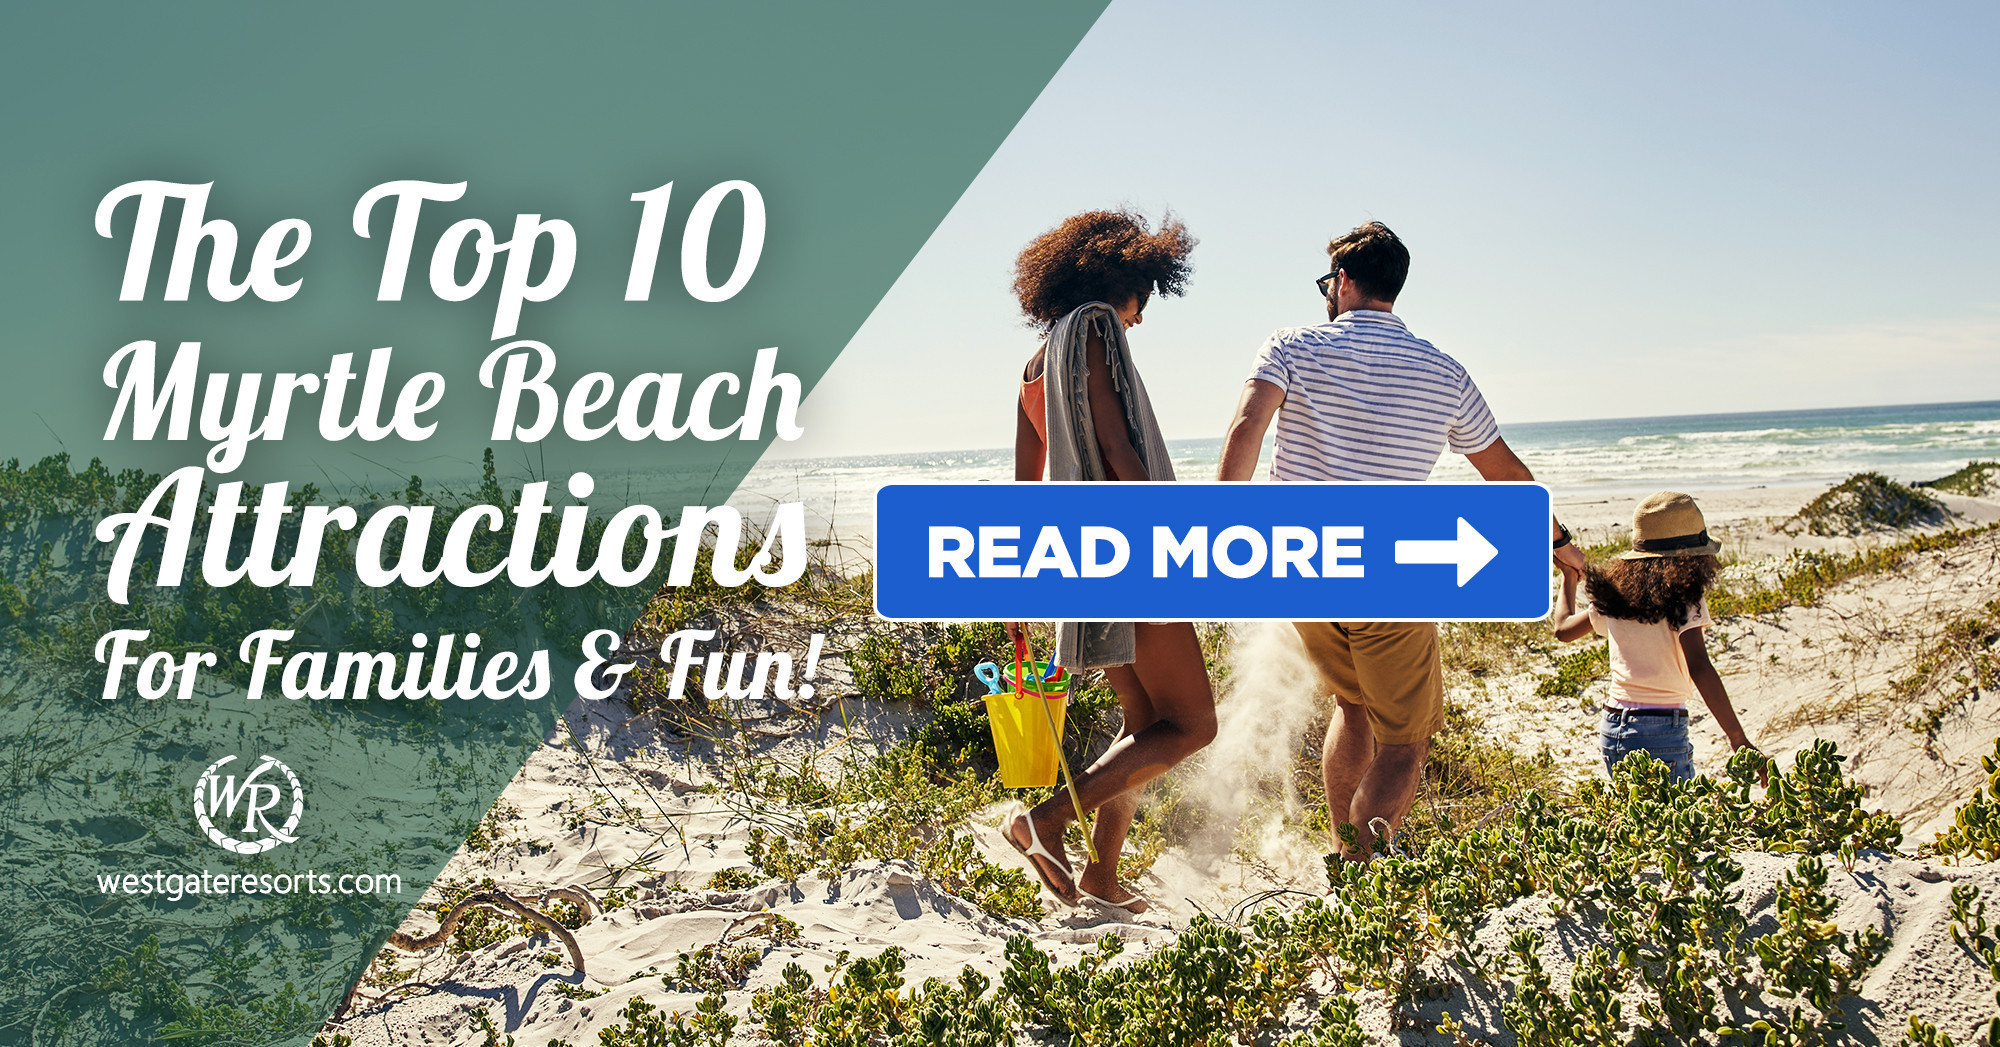 The Top 10 Myrtle Beach Attractions For Families And Fun!